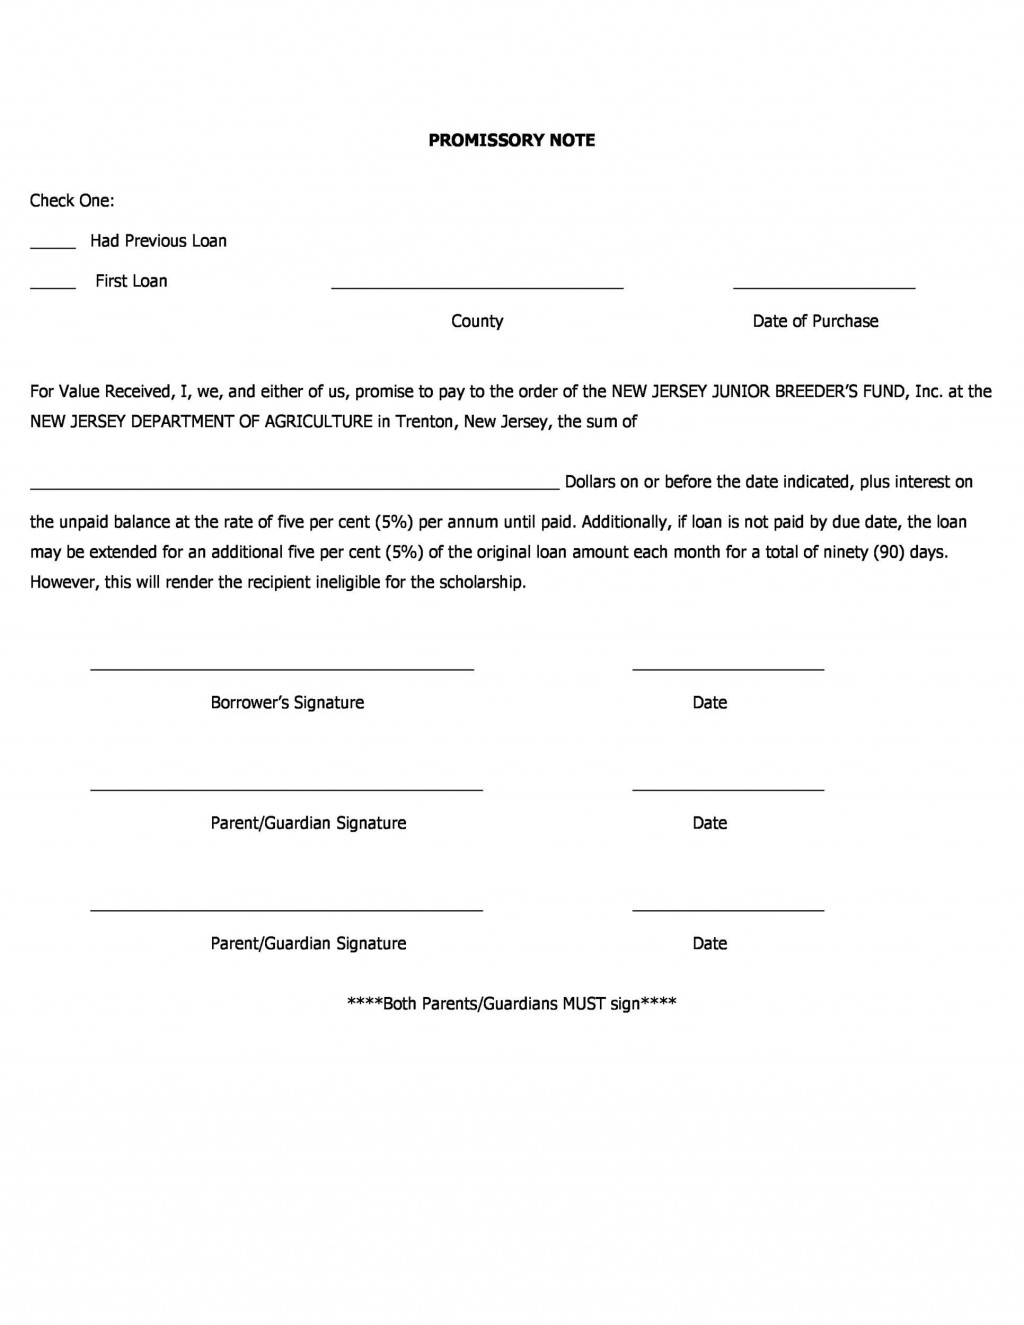 004 Marvelou Loan Promissory Note Template High Resolution  Ppp Form Personal Format StudentLarge